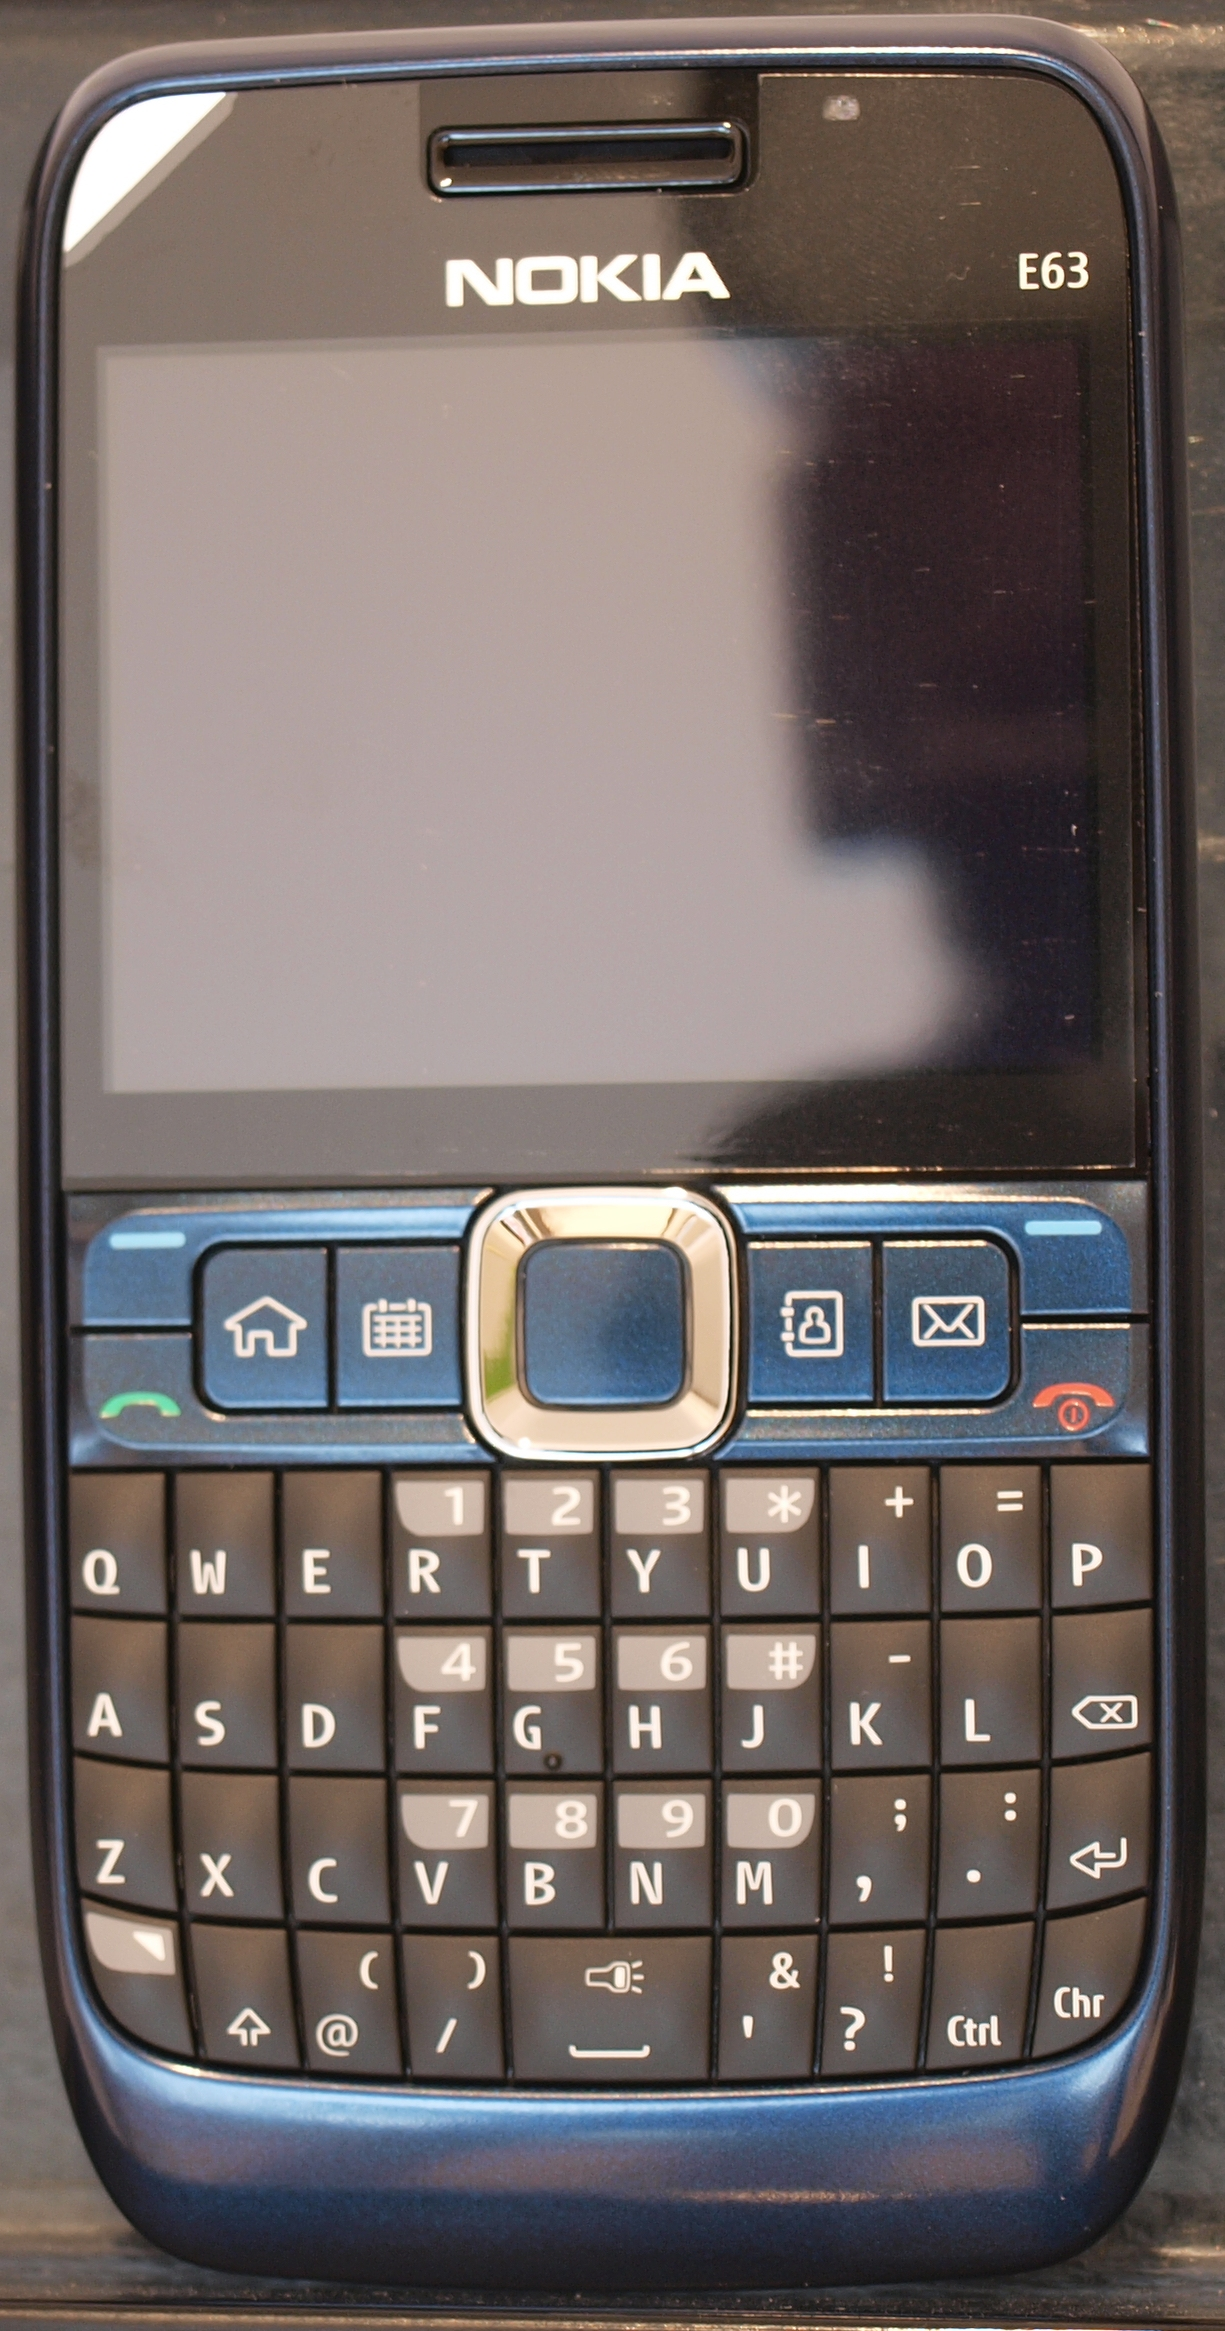 Can nokia 500 support skype